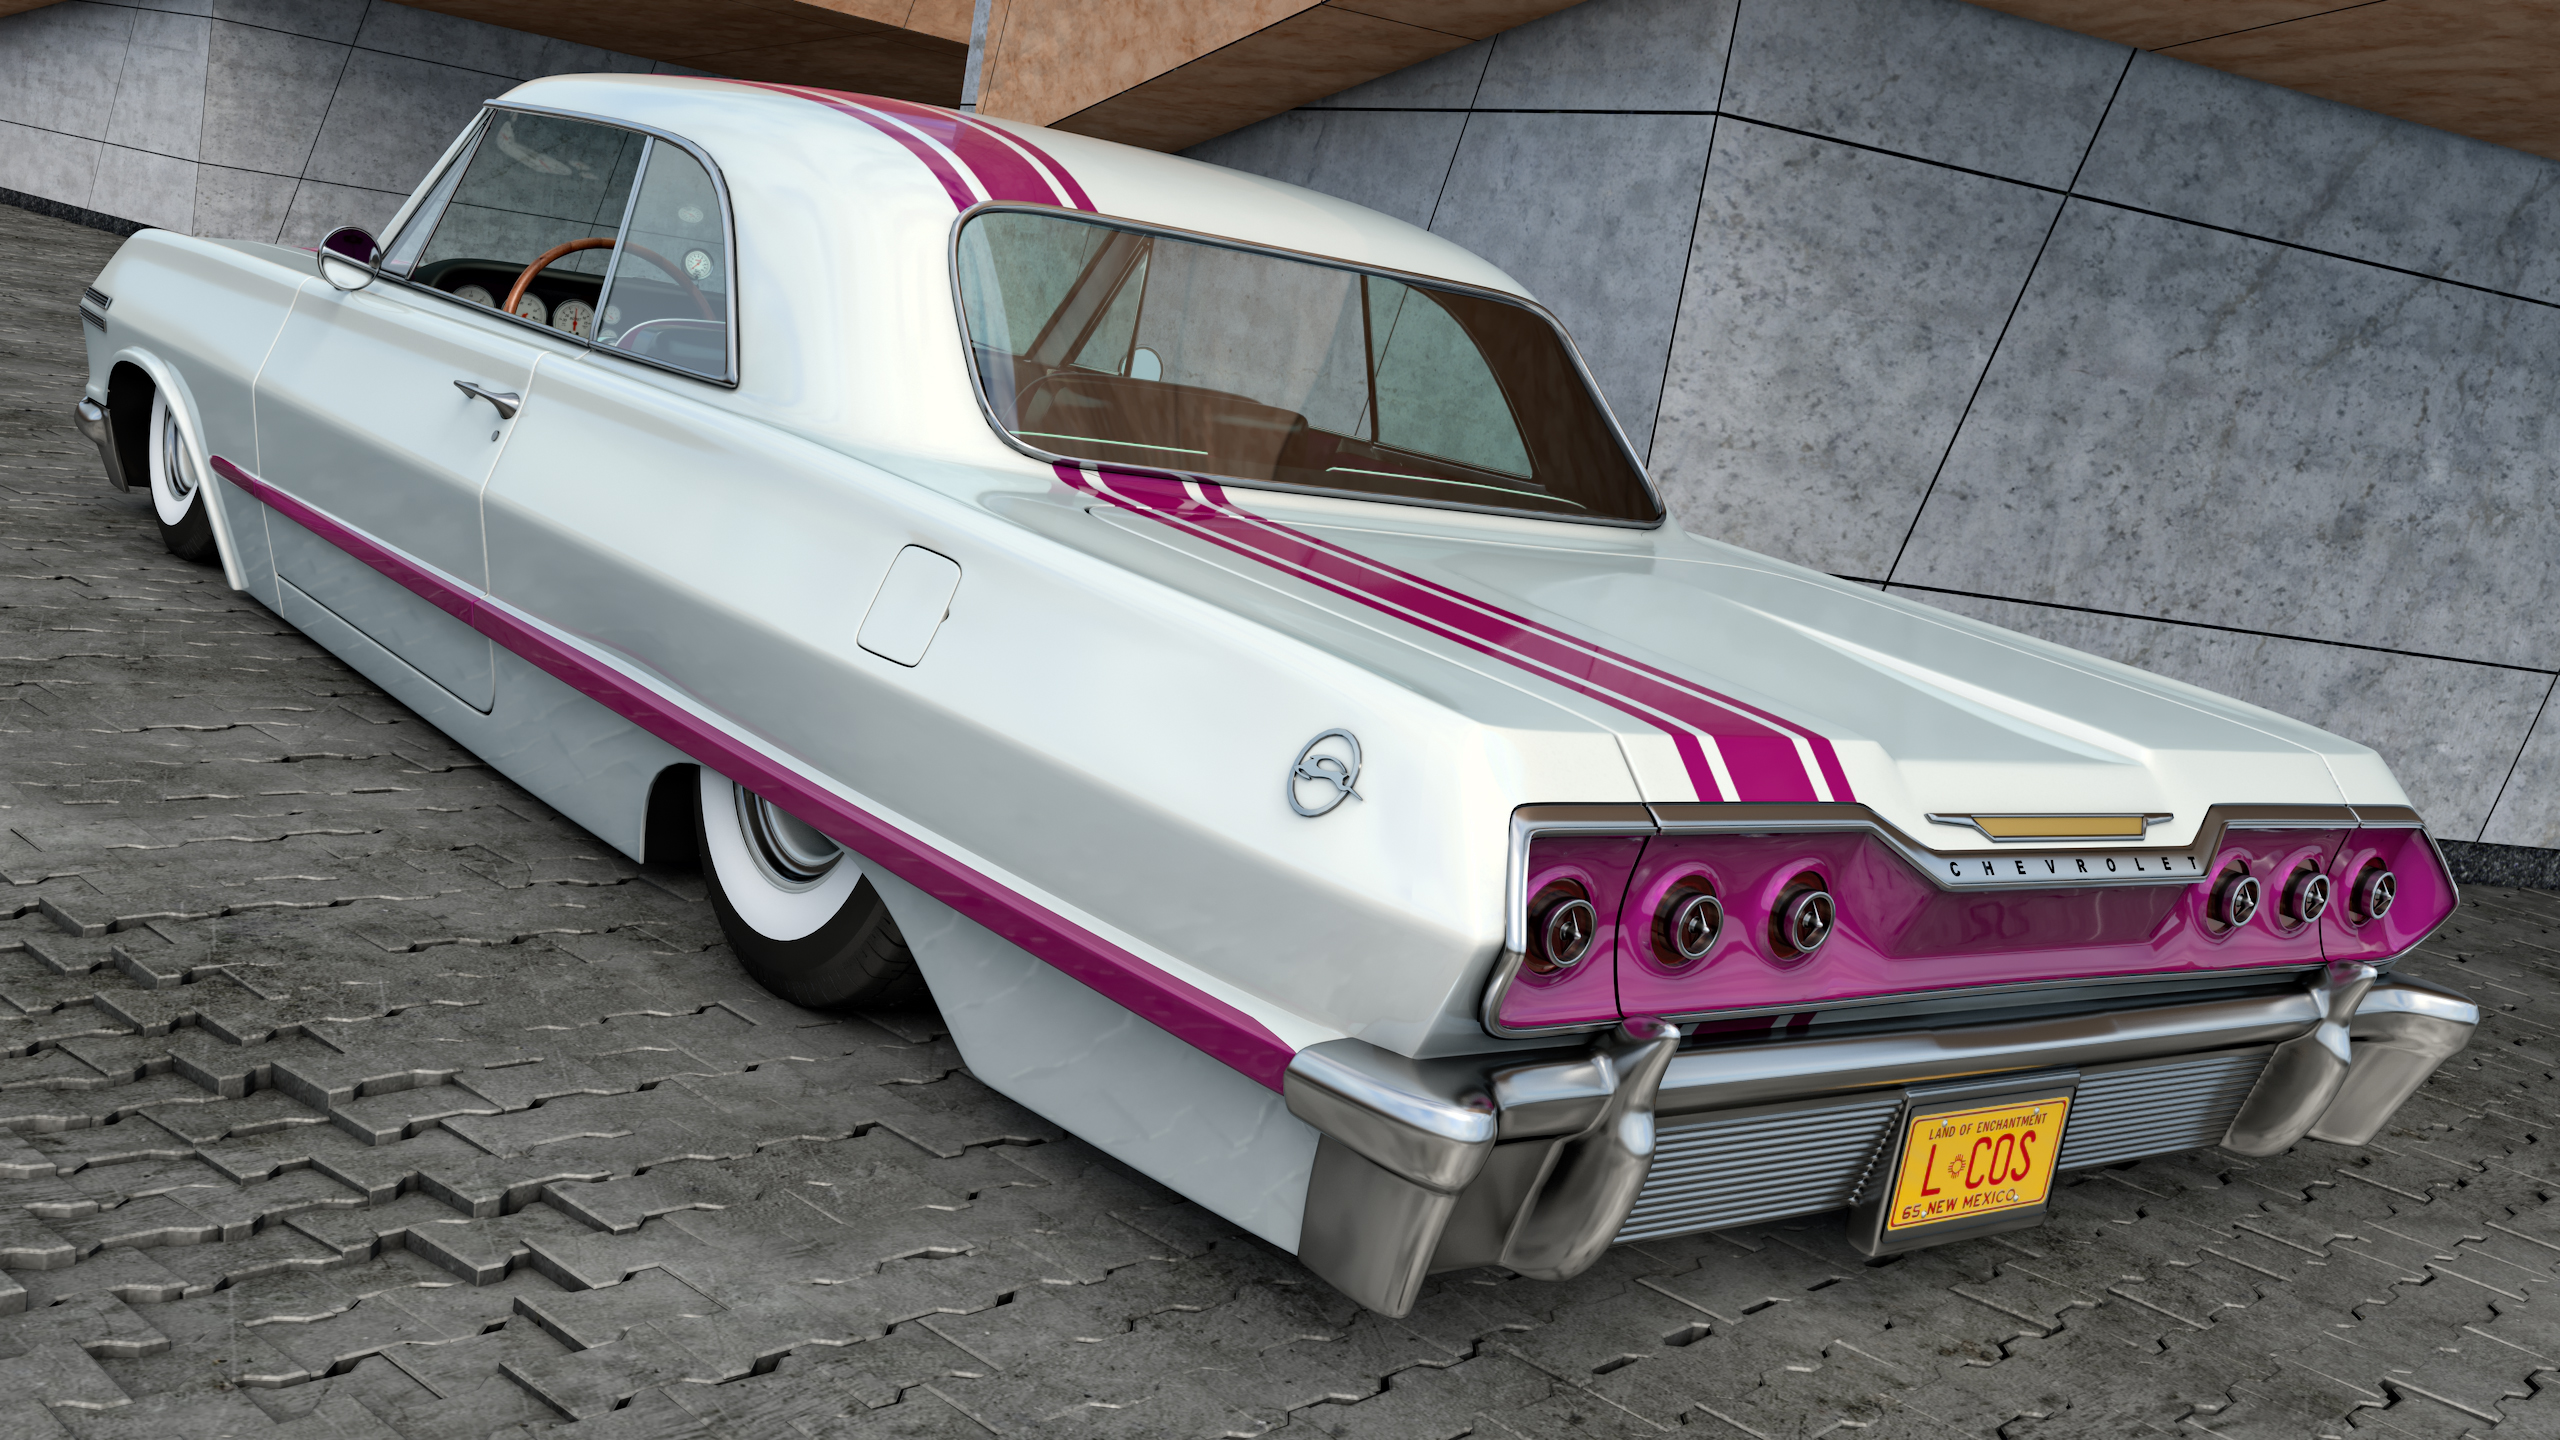 1963 Chevy Impala Wallpaper: 1963 Chevrolet Impala By SamCurry On DeviantArt